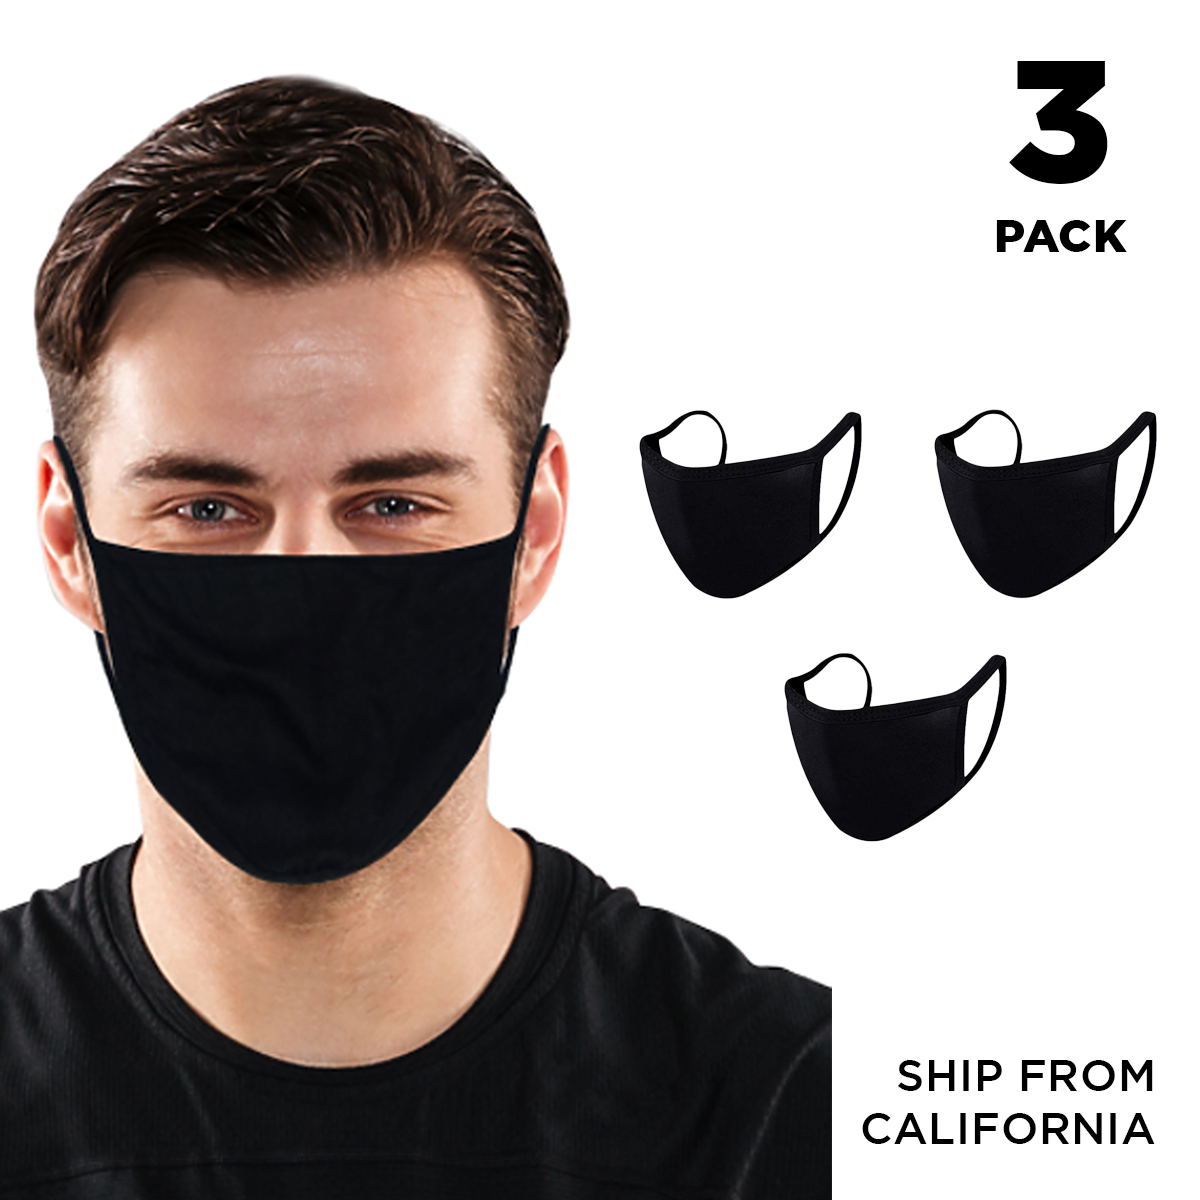 CSPRING 8 Pack Cute Funny Black and White Reusable Cotton Face Cover Mouth Mask for Men Women Teens